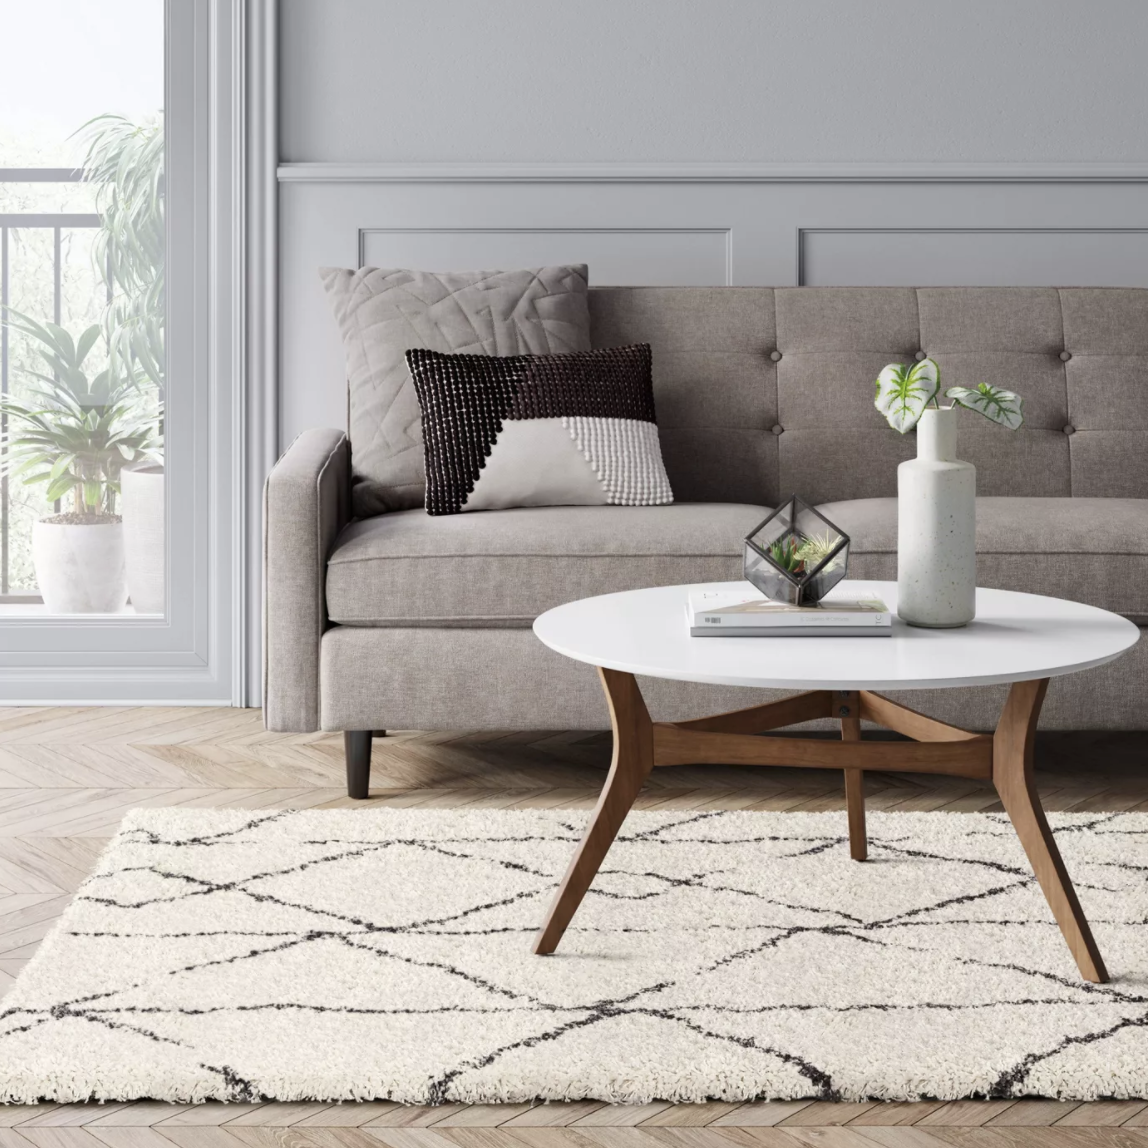 the grey and cream area rug in a living room